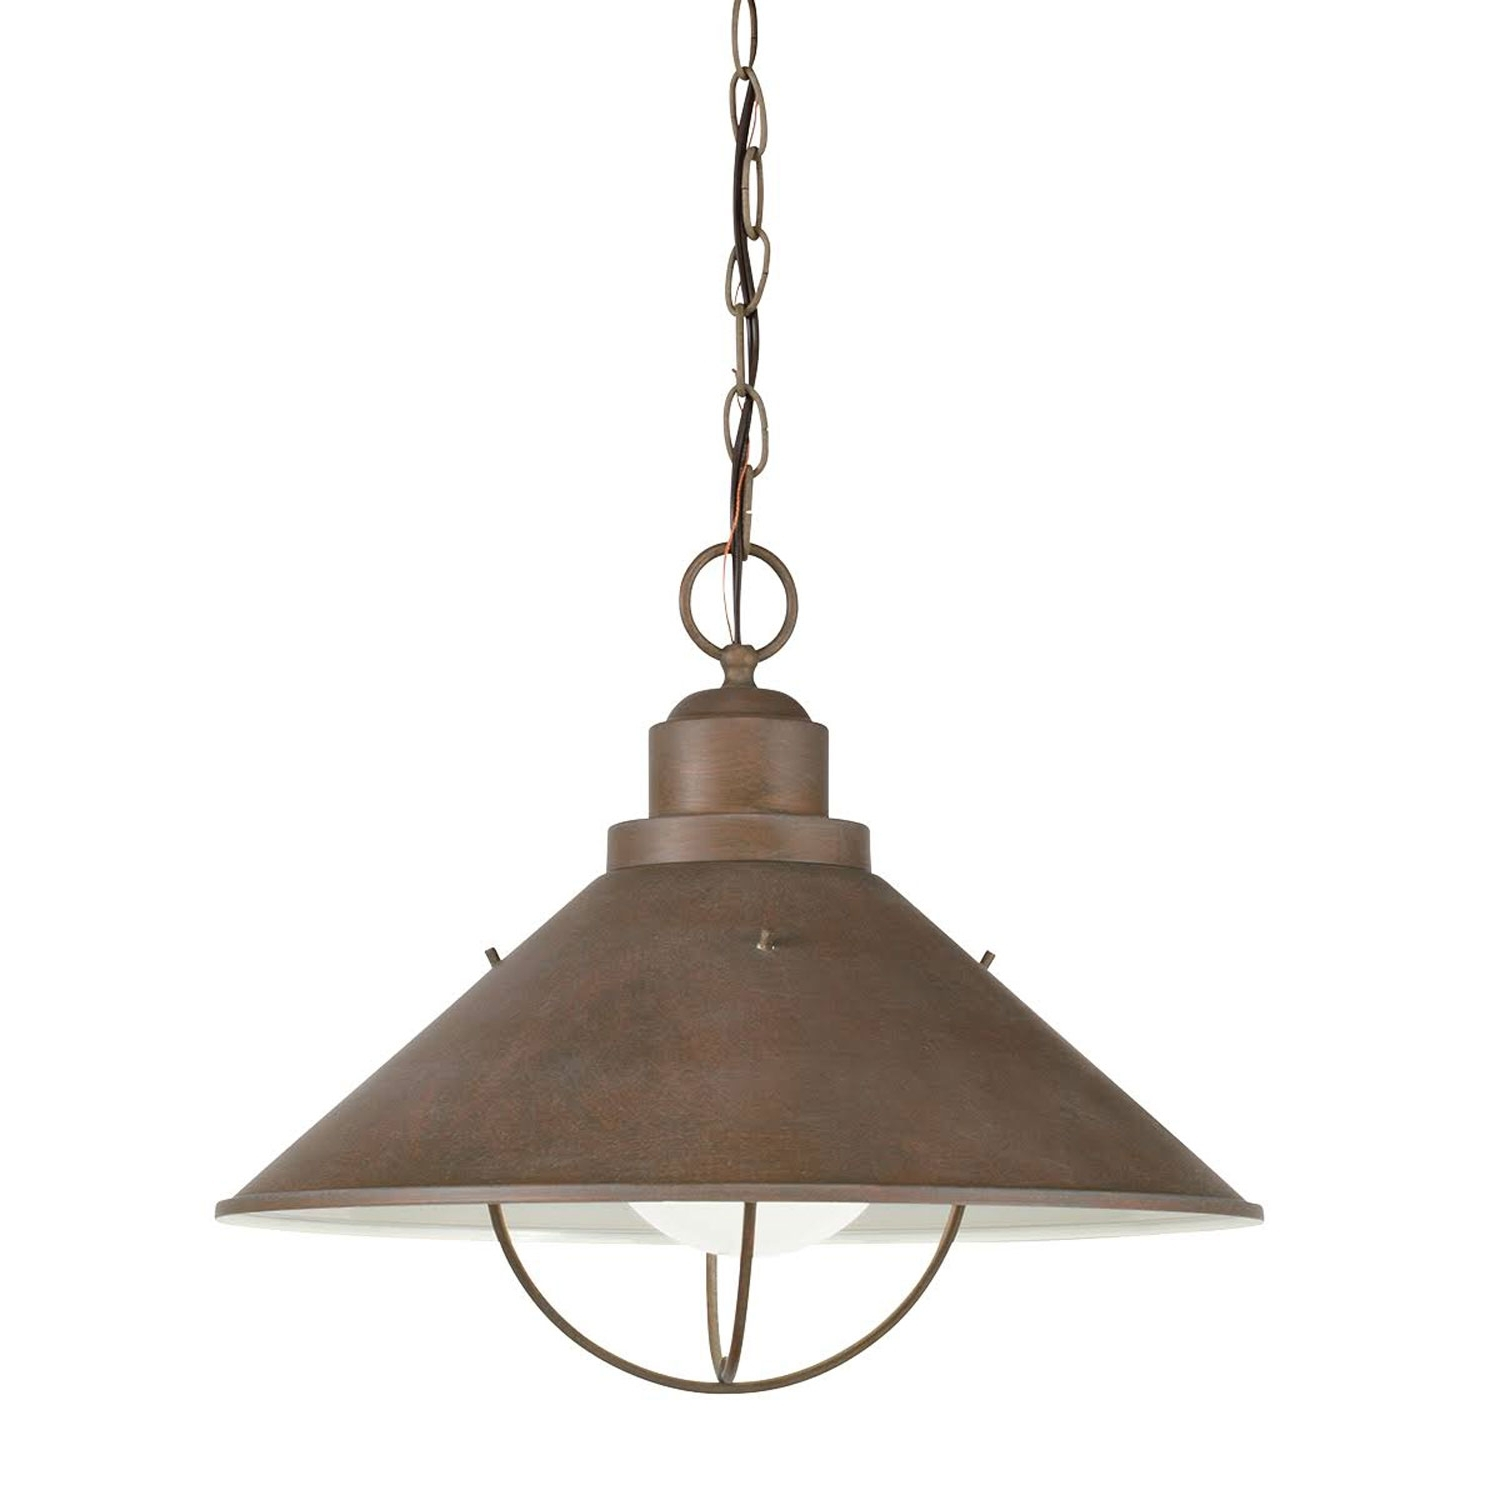 Seaside Nautical Dome Light Kichler Outdoor Pendants Outdoor Hanging Intended For Fashionable Kichler Outdoor Hanging Lights (View 6 of 20)